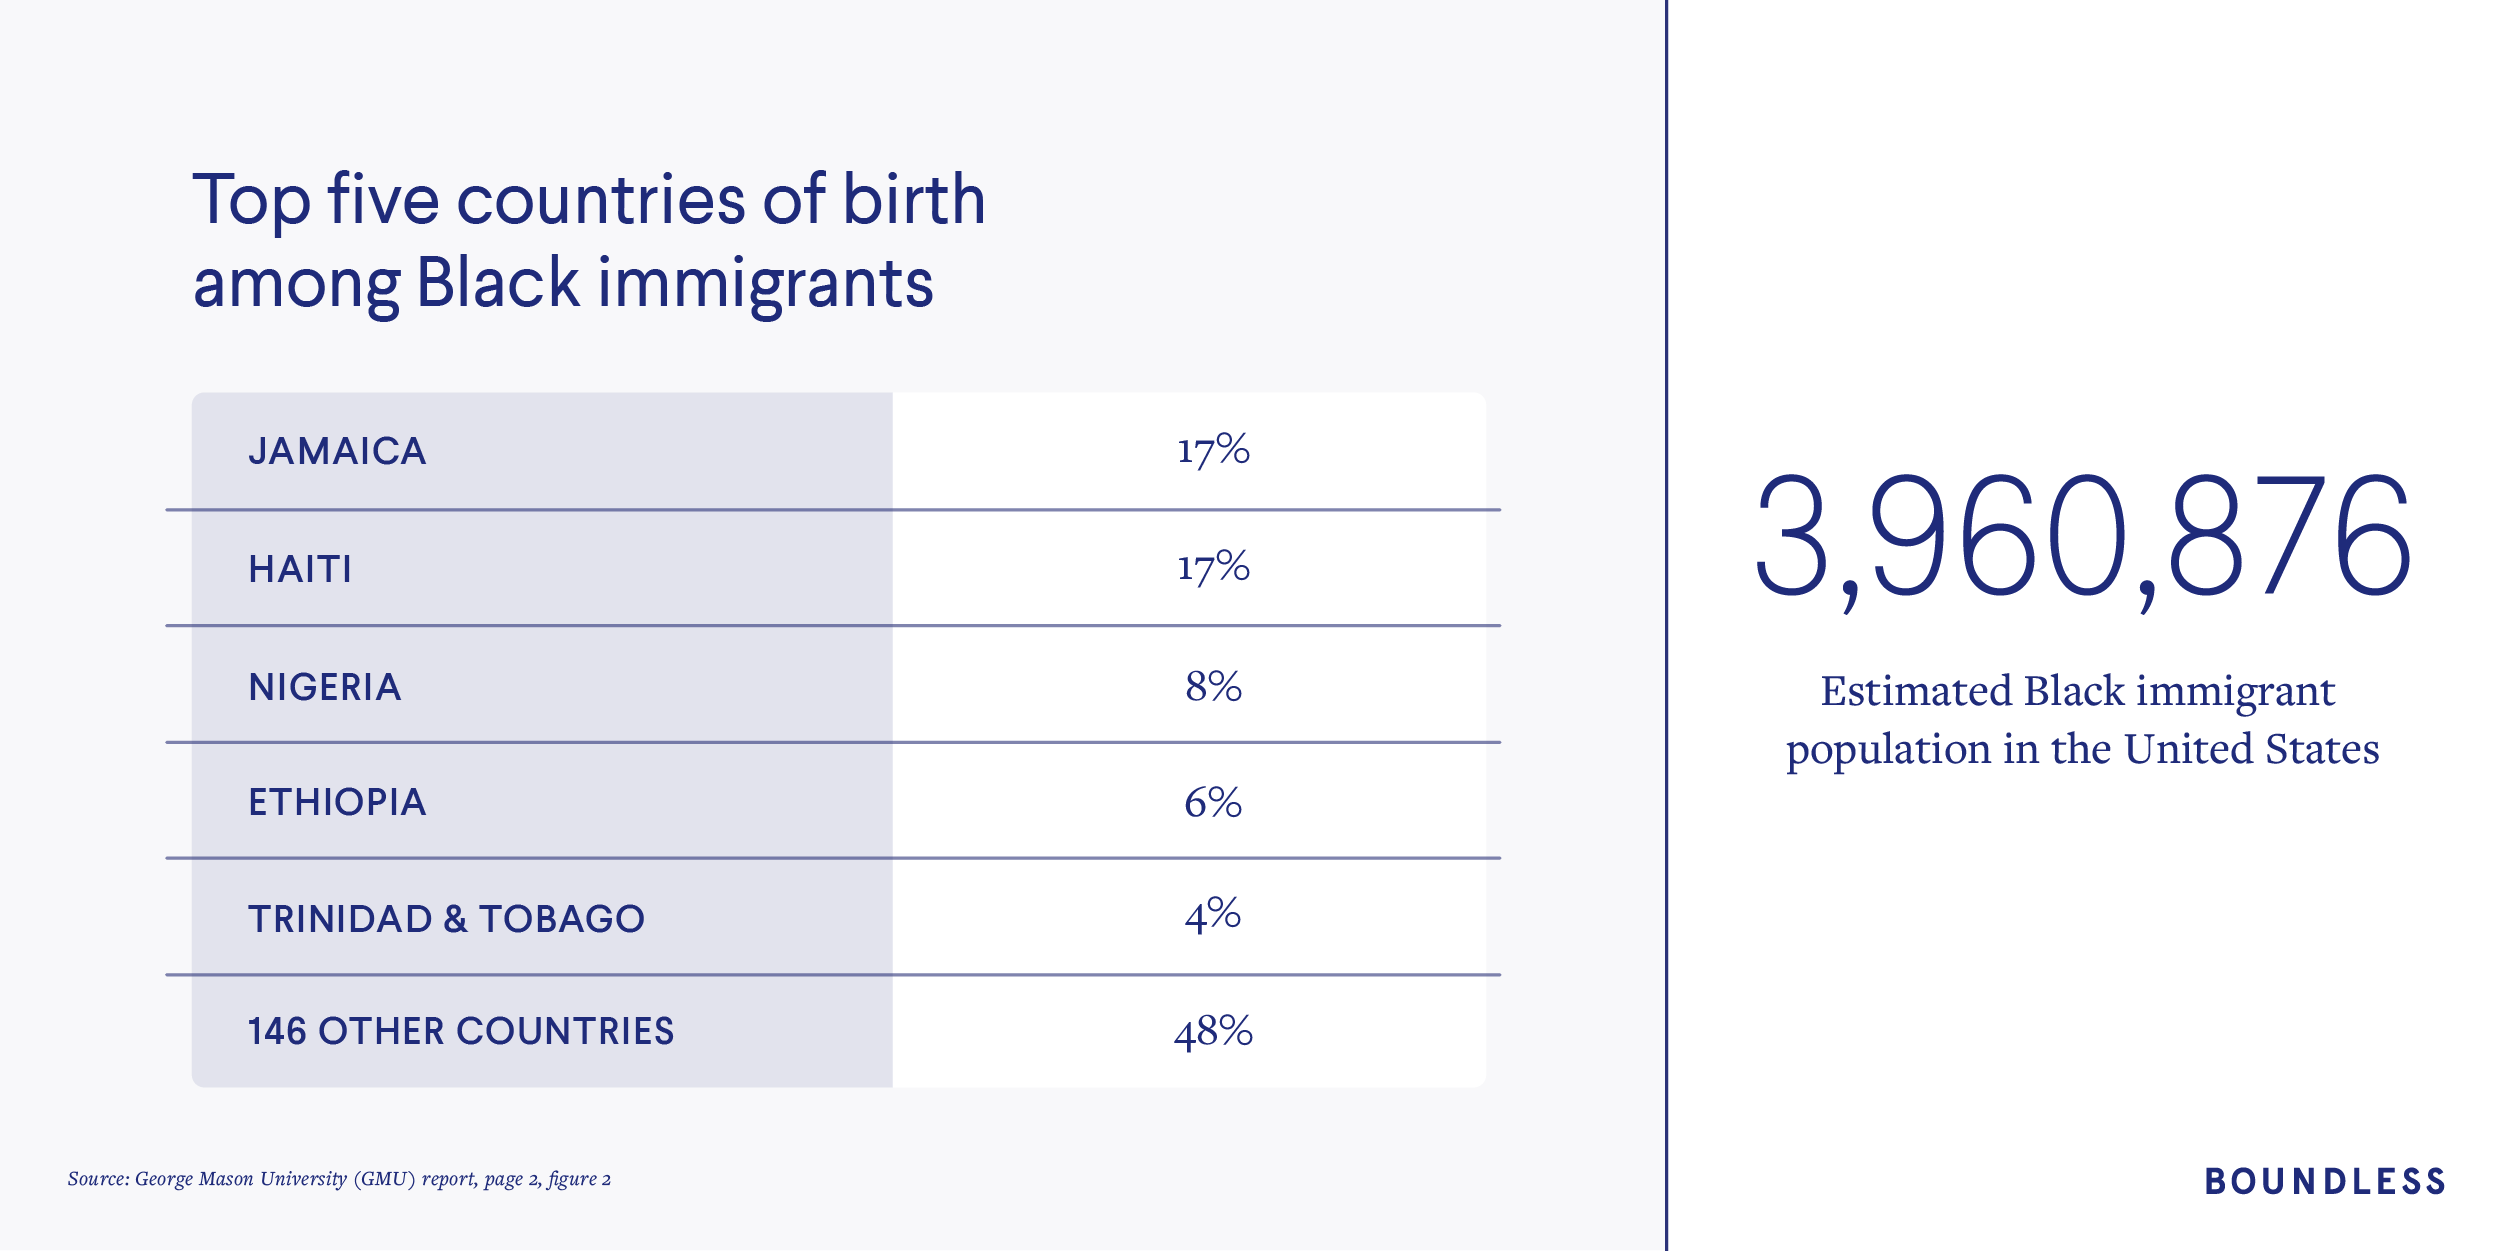 Top countries of birth among Black immigrants